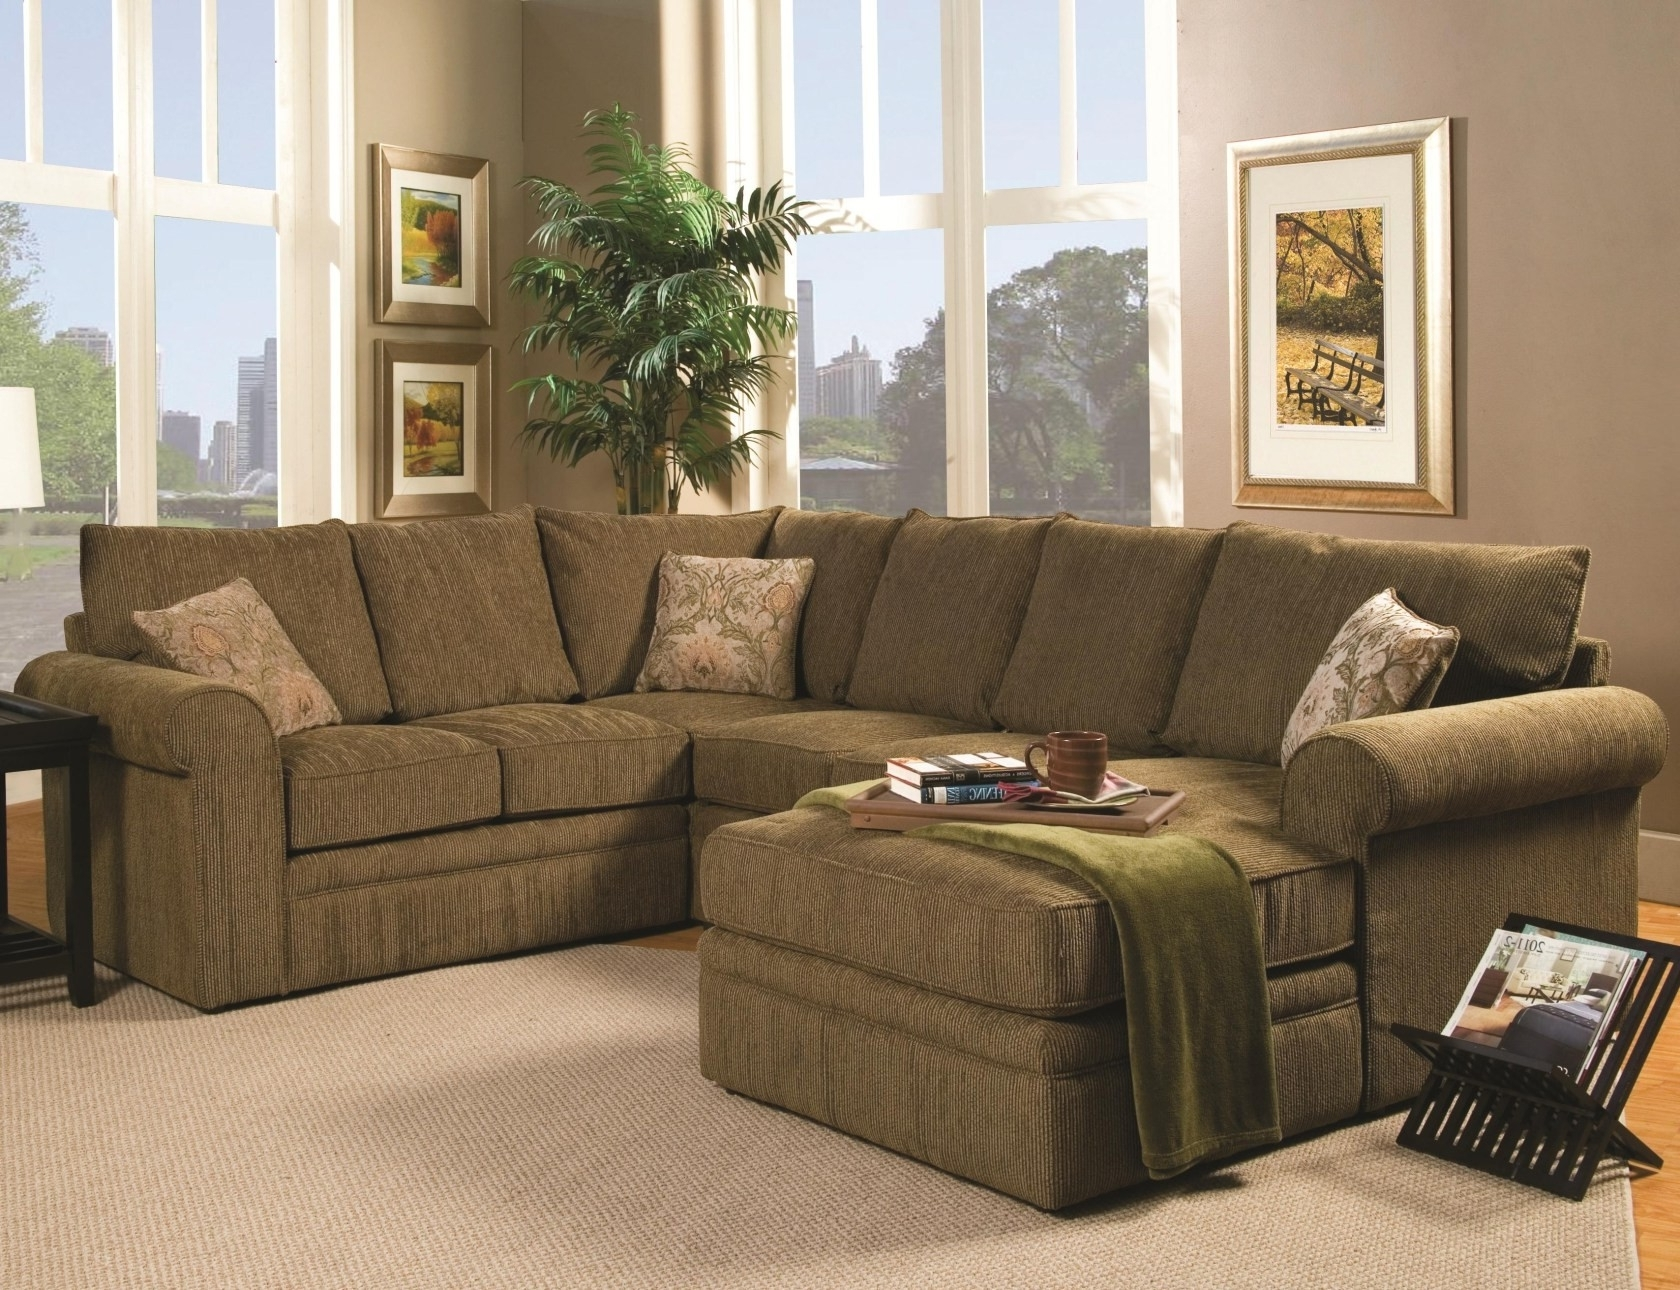 Fashionable U Shaped Leather Sectional Sofas In Perfect U Shaped Sectional Sofa 77 With Additional Living Room (View 5 of 20)